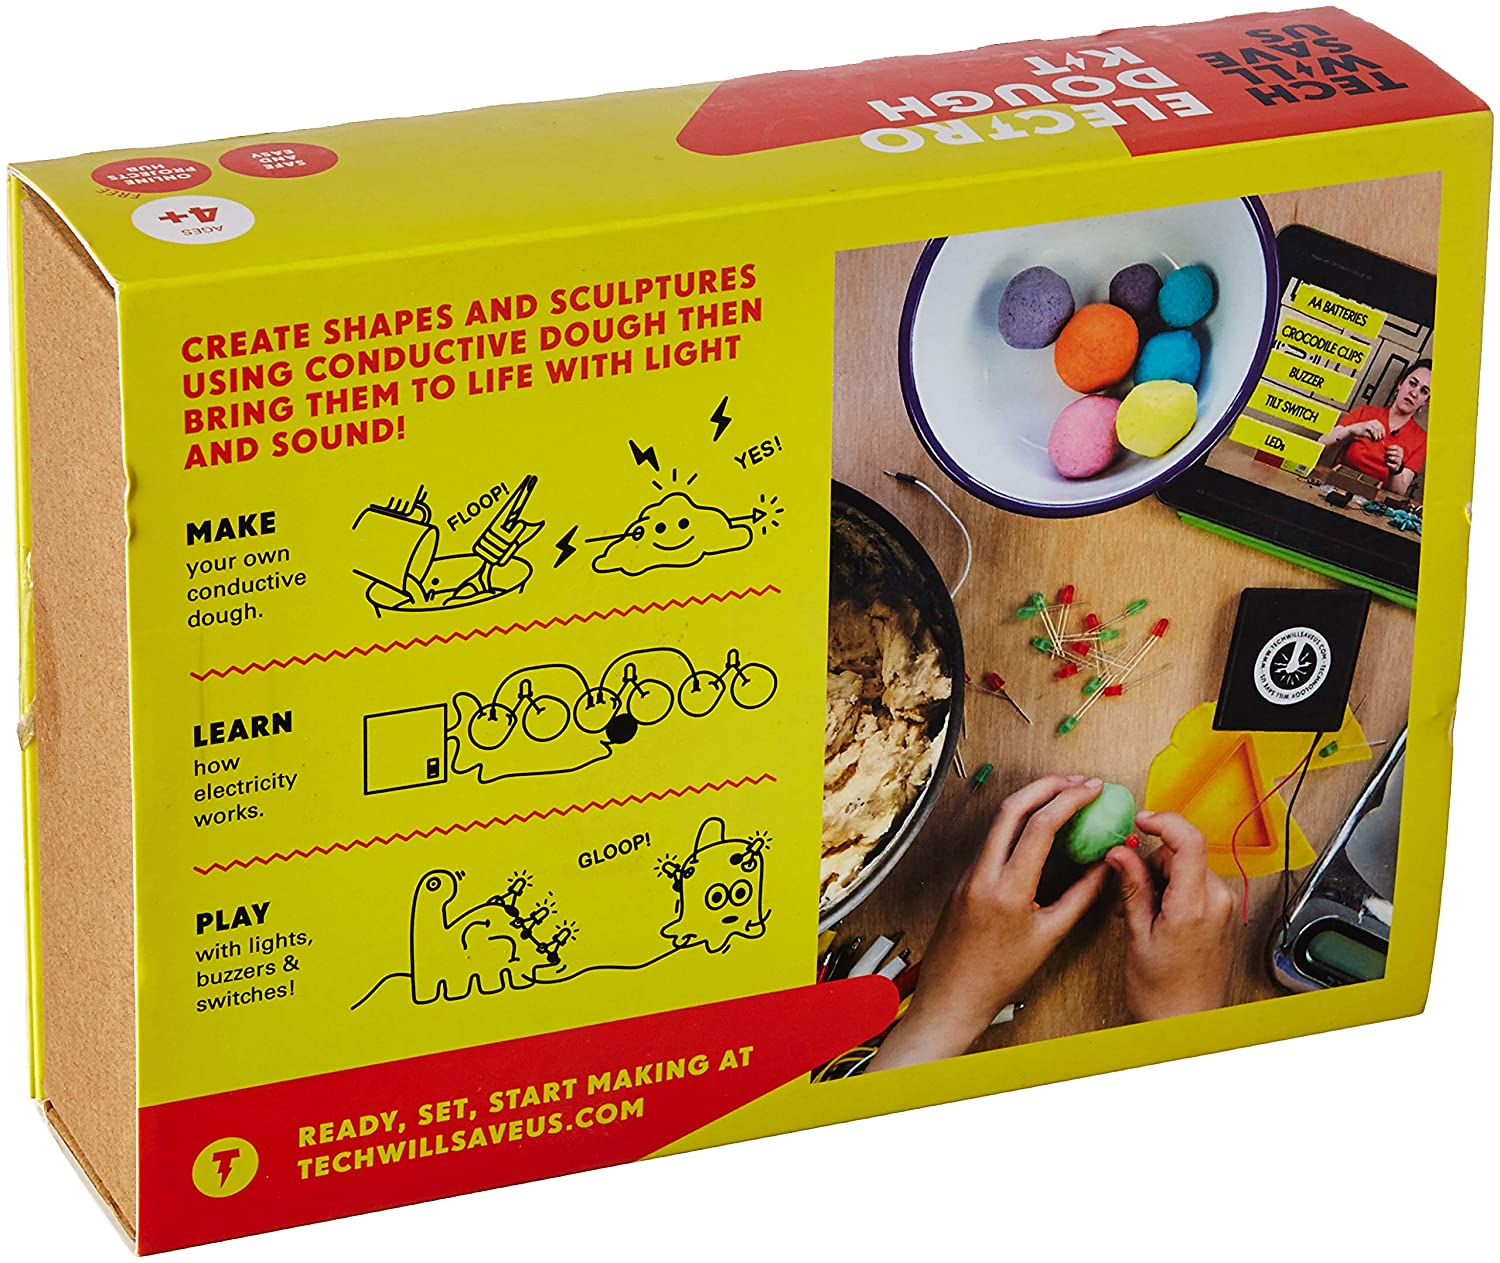 Tech Will Save Us Electro Dough Kit Educational Stem Squishy Circuits Making Conductive Toy Ages 4 And Up Toys Games